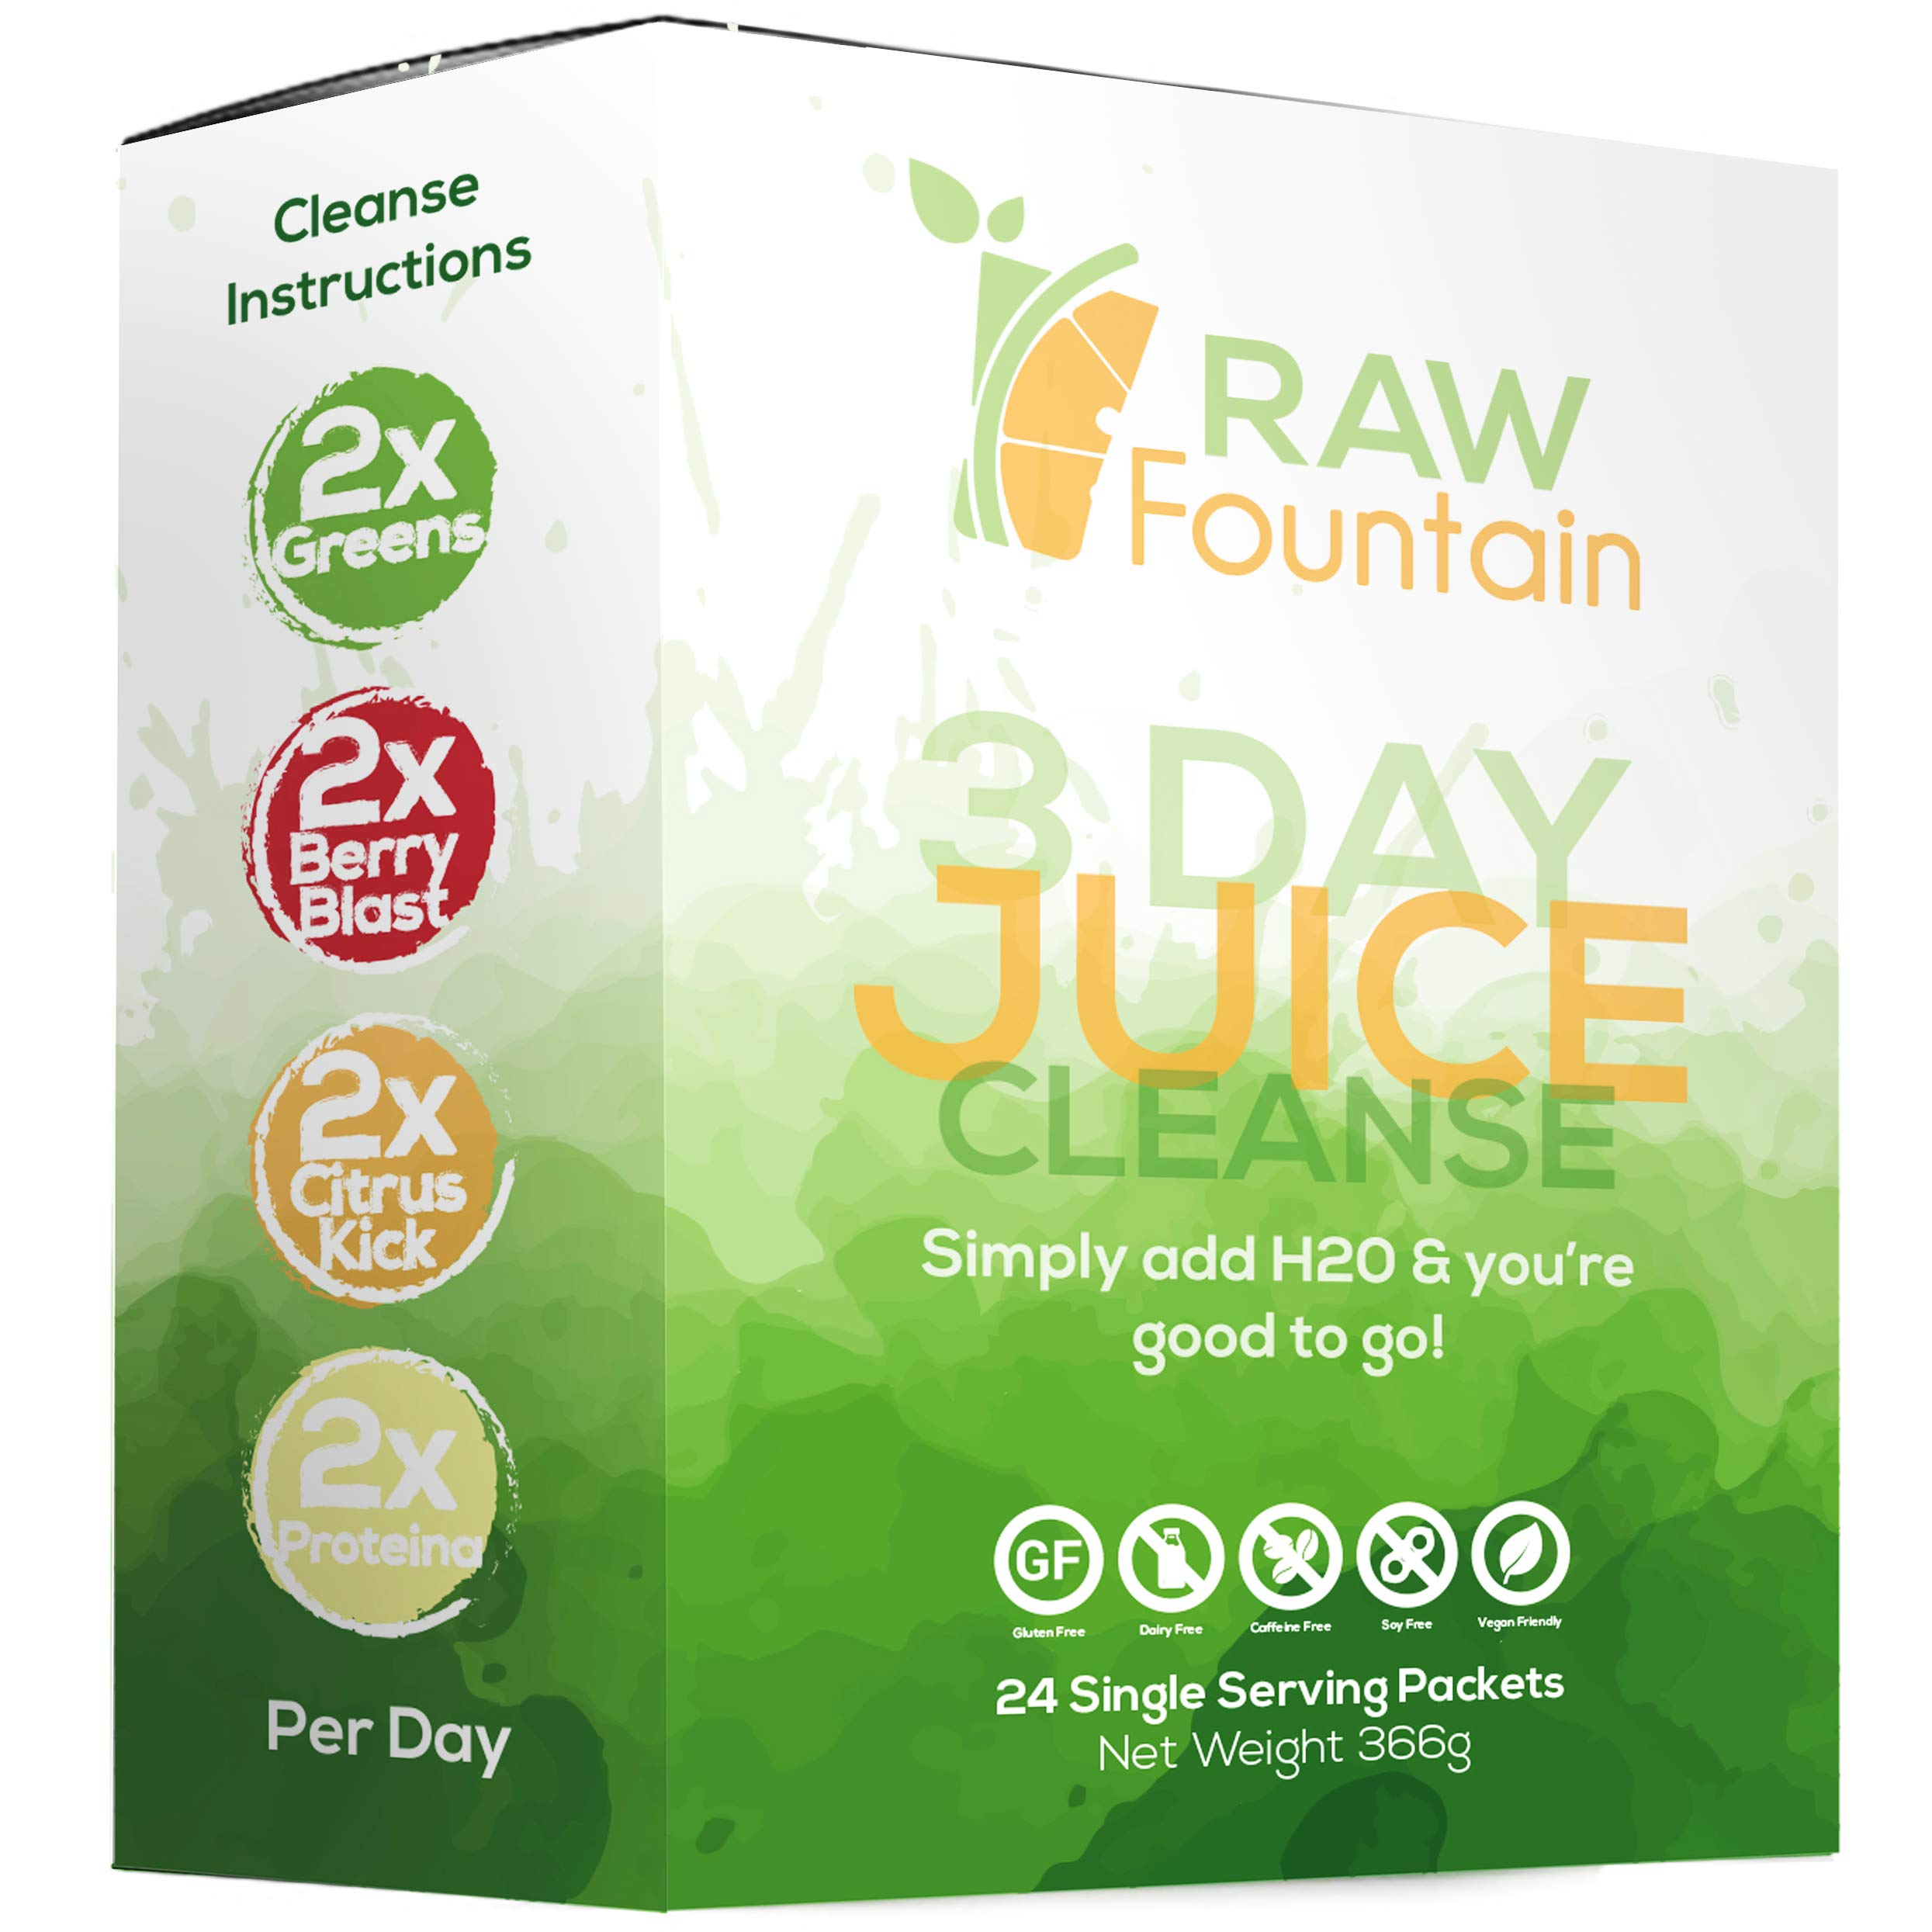 3 Day Juice Cleanse Detox, 24 Single Serving Powder Packets, Travel & Vegan Friendly, Weight Loss Program, All Natural (3 Day) by Raw Fountain